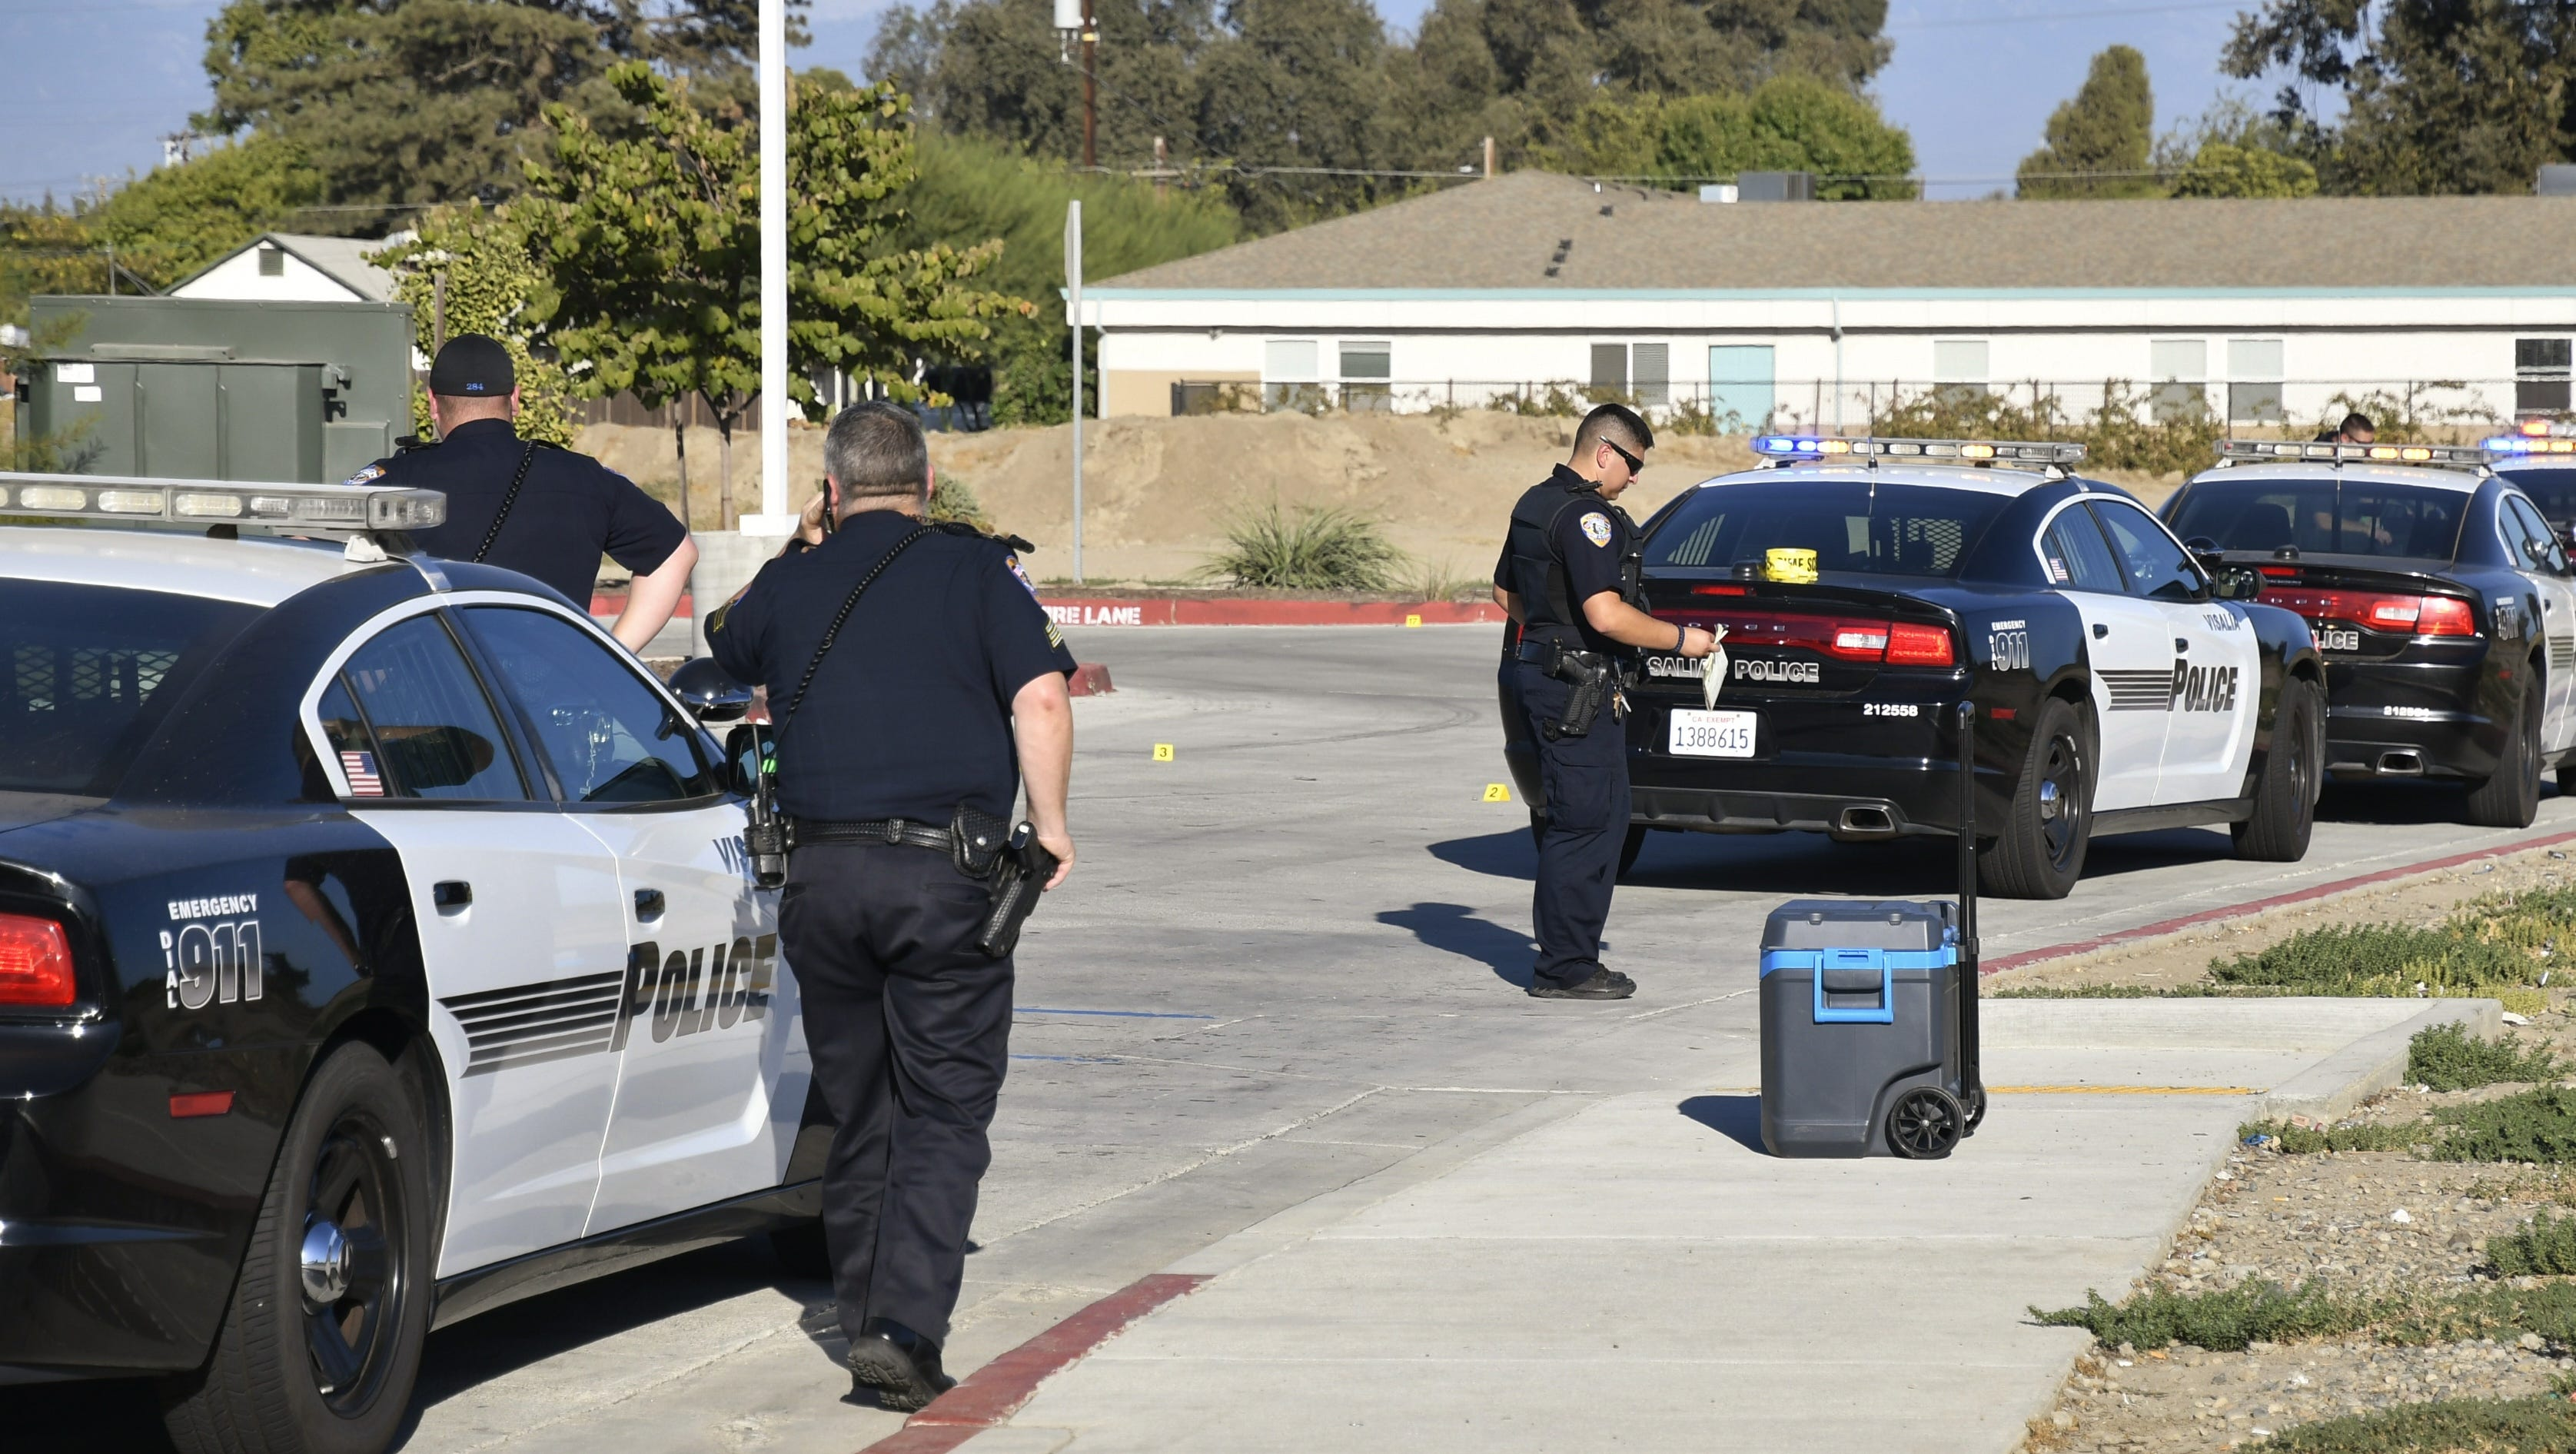 Visalia police investigate an officer-involved shooting near Arco near Lovers Lane on Saturday, Sept. 22.